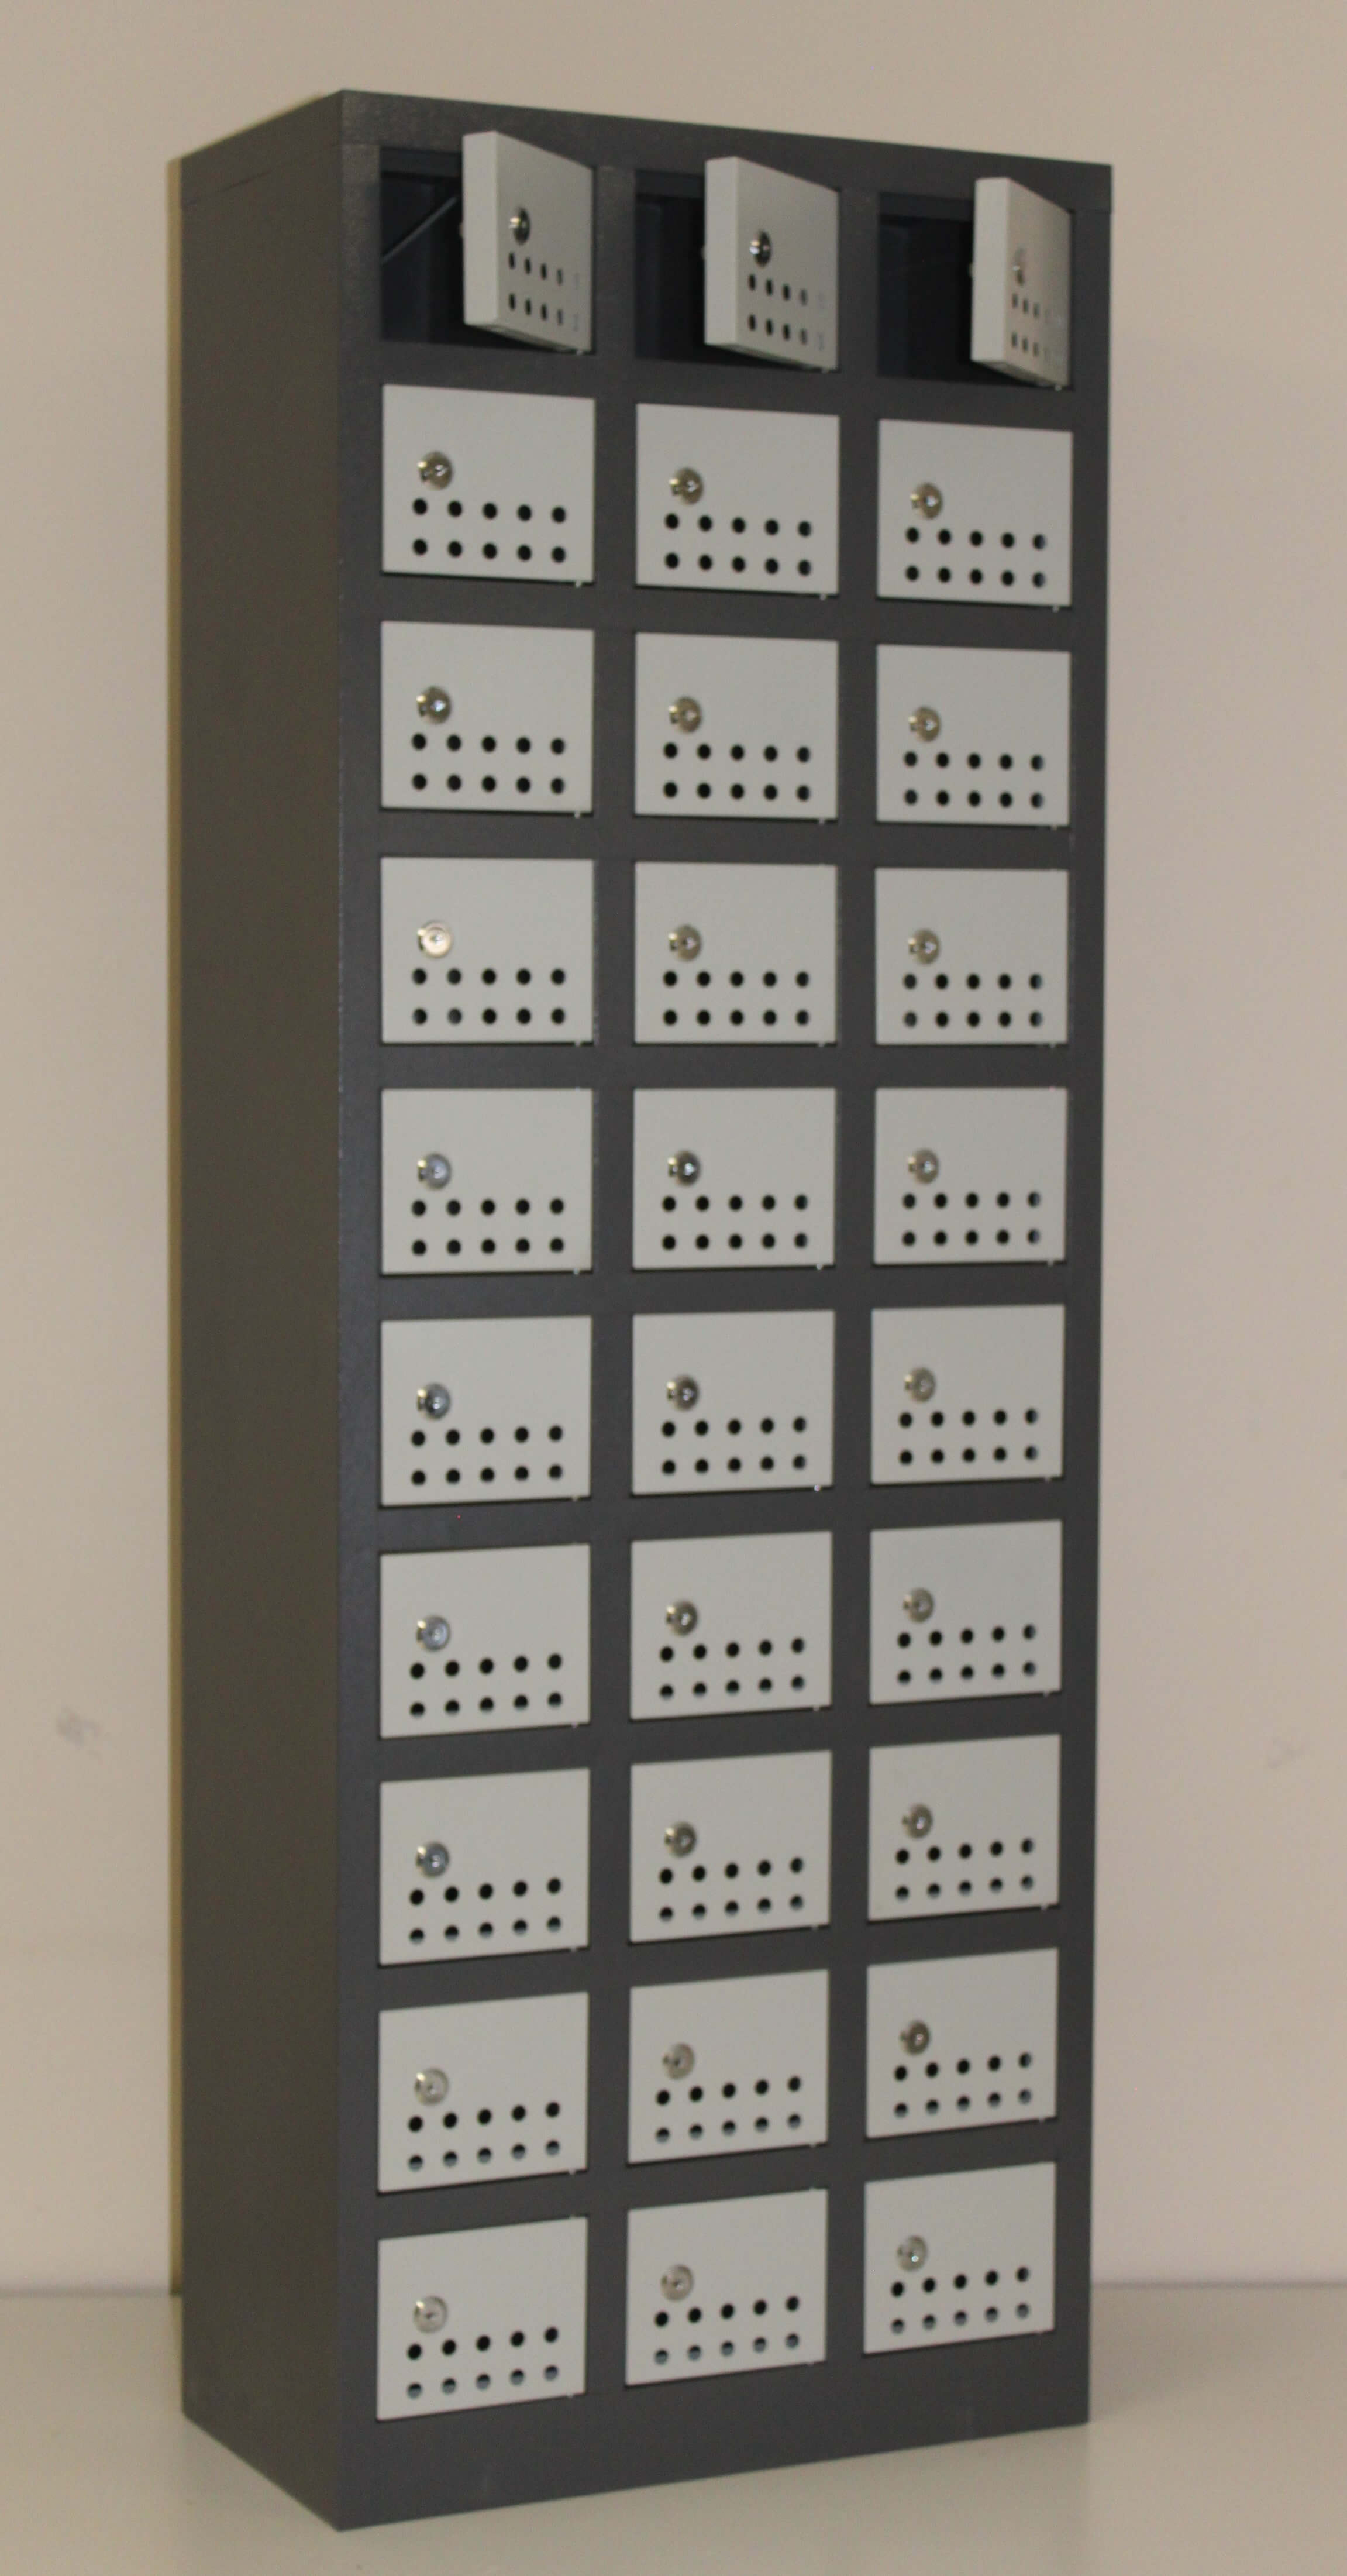 30 Compartment Cellphone Locker